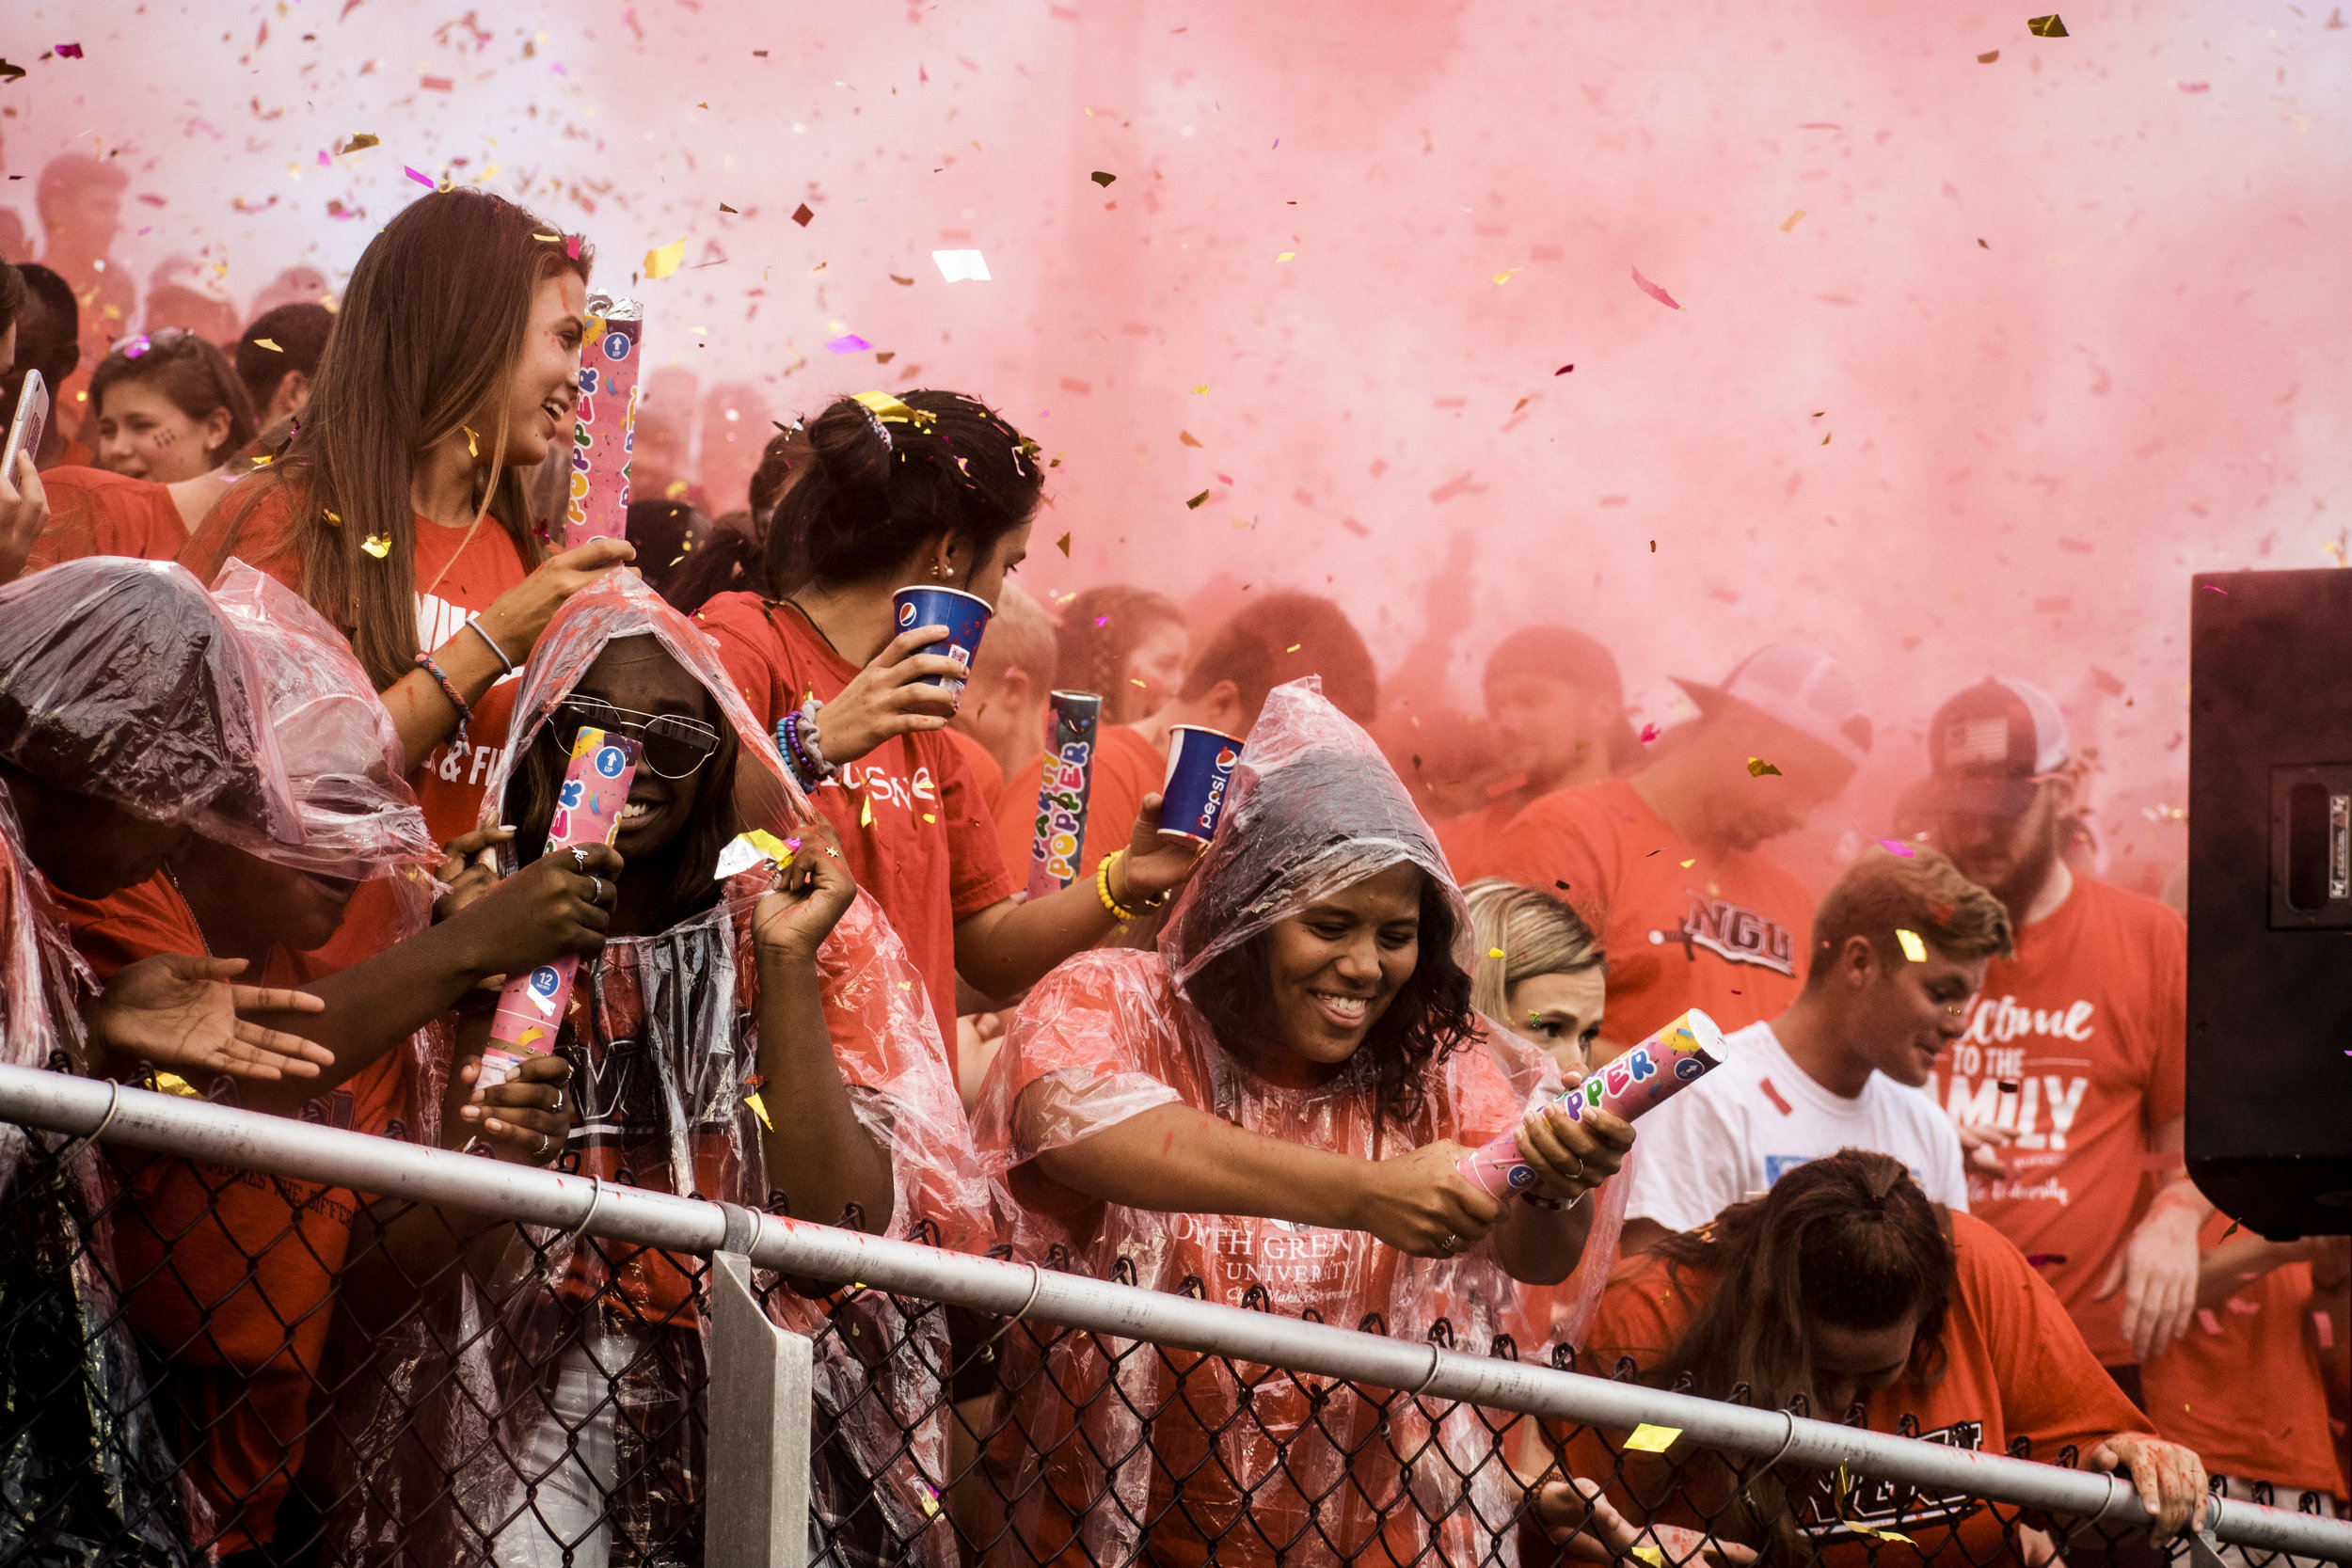 The student section gets crazy after bags of paint and confetti have been thrown.